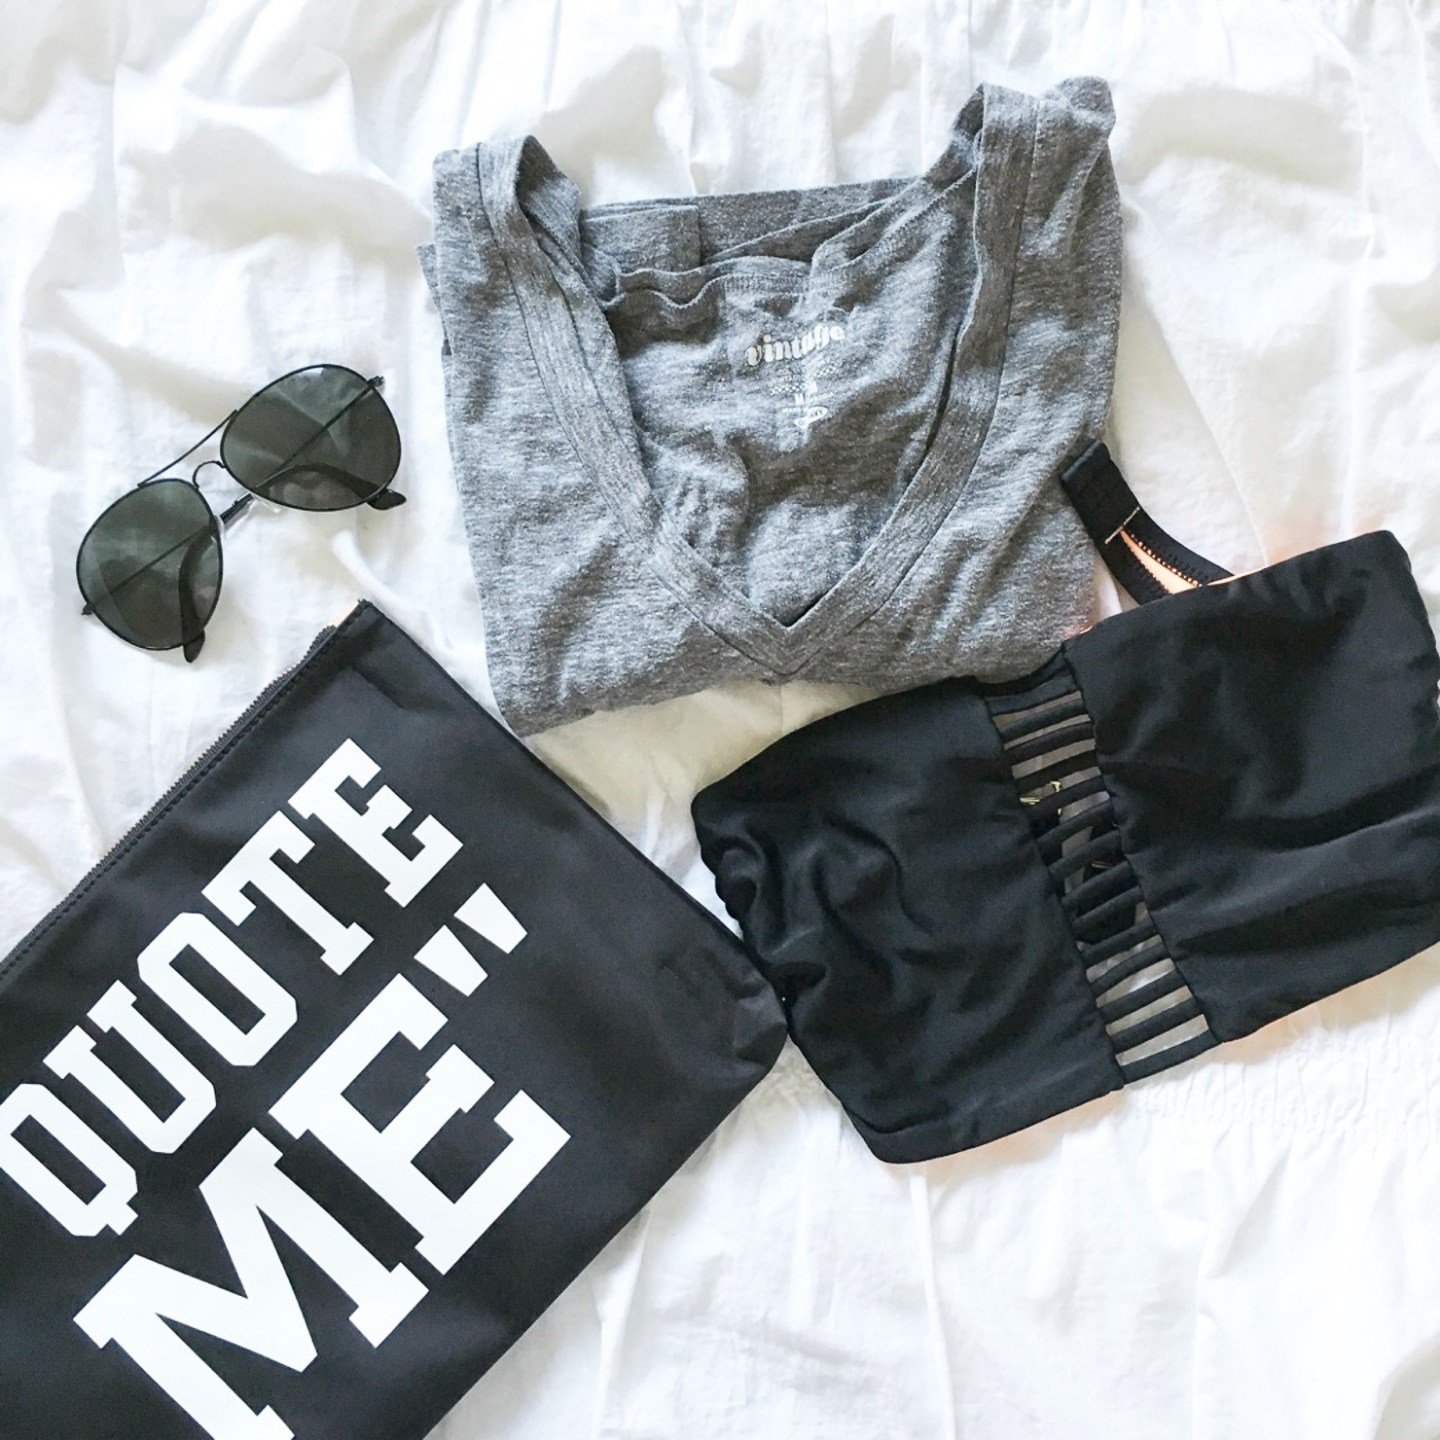 quote-me-banana-republic-clutch-flatlay-last-days-of-summer-pool-day-black-and-white-wishes-and-reality-instagram